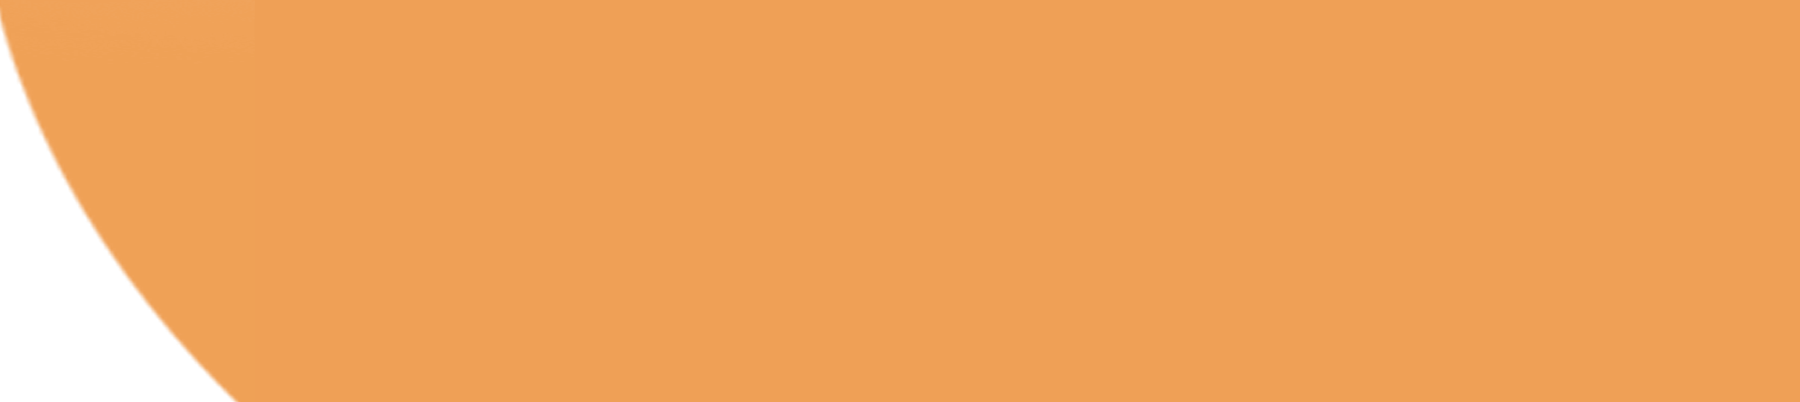 orange-bar-from-right-fw